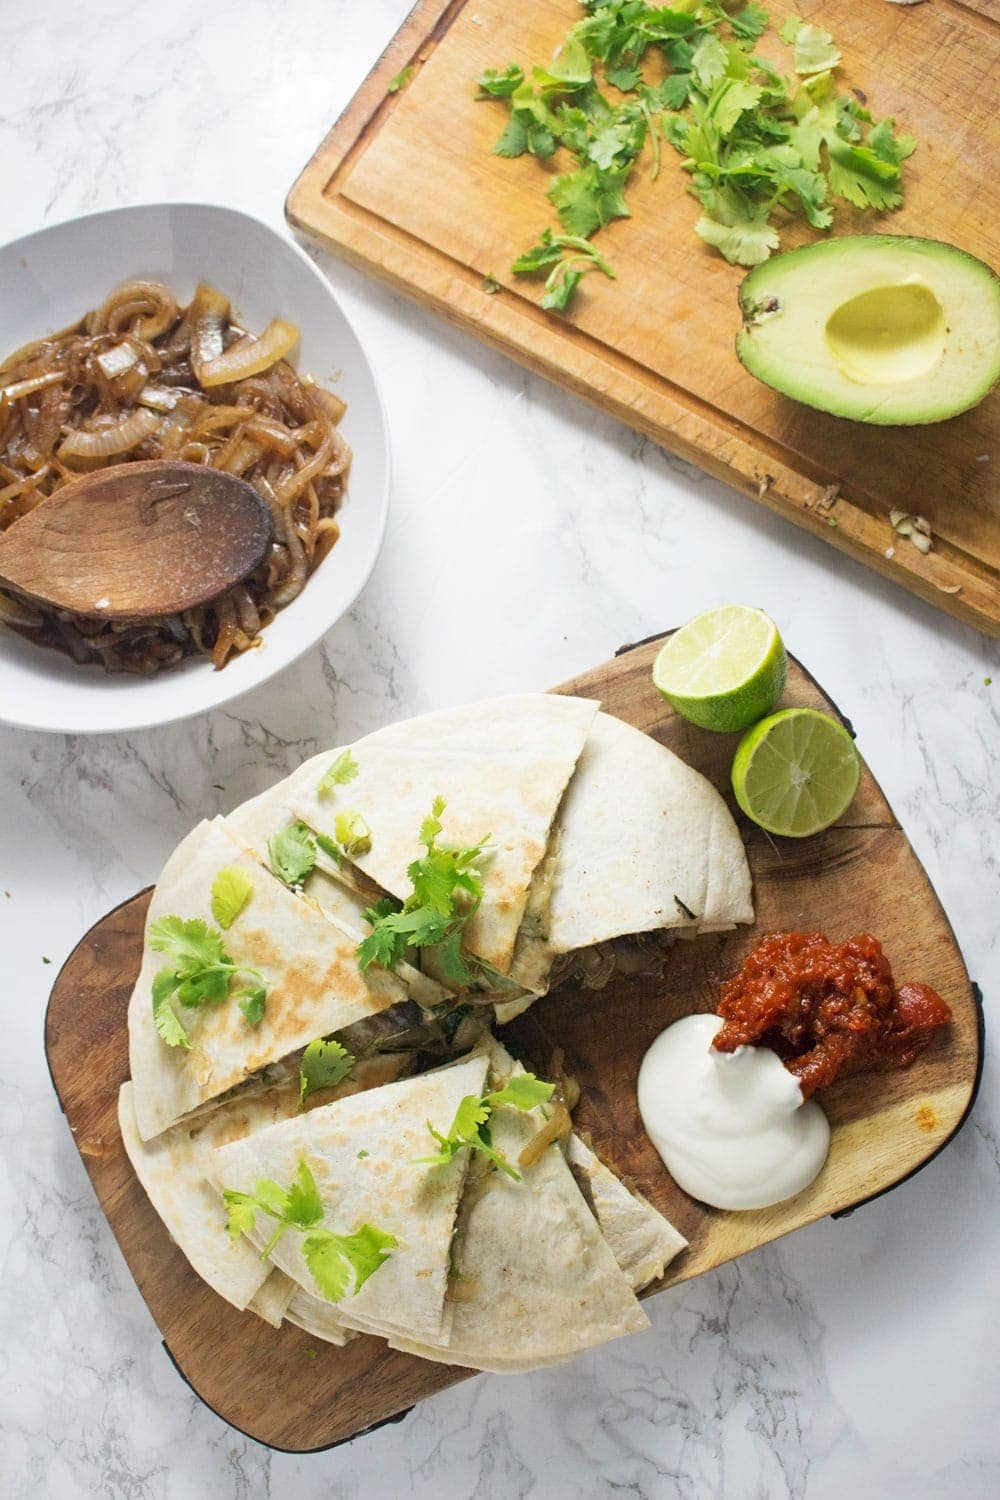 These portobello & caramelised onion quesadillas are the perfect vegetarian dinner when you're craving something full of Mexican flavour!